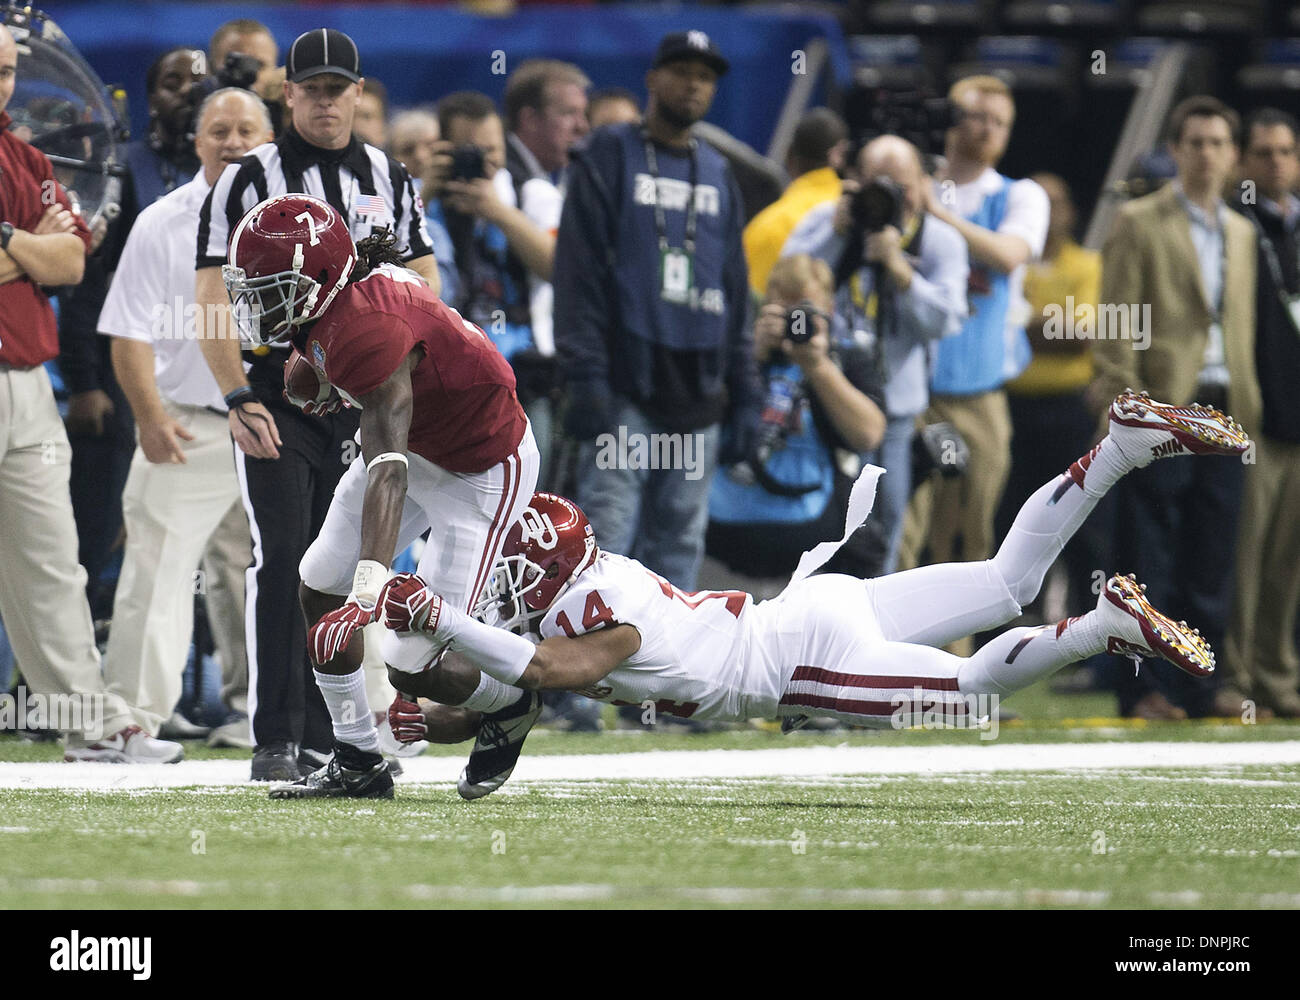 New Orleans, Louisiana, USA. 2nd Jan, 2014. January 02, 2014: Alabama wide receiver Kenny Bell (7) runs for yardage as Oklahoma defensive back Aaron Colvin (14) attempts to make the tackle during NCAA Football game action between the Oklahoma Sooners and the Alabama Crimson Tide at Mercedes-Benz Superdome in New Orleans, Louisiana. Oklahoma defeated Alabama 45-31. Credit:  csm/Alamy Live News - Stock Image